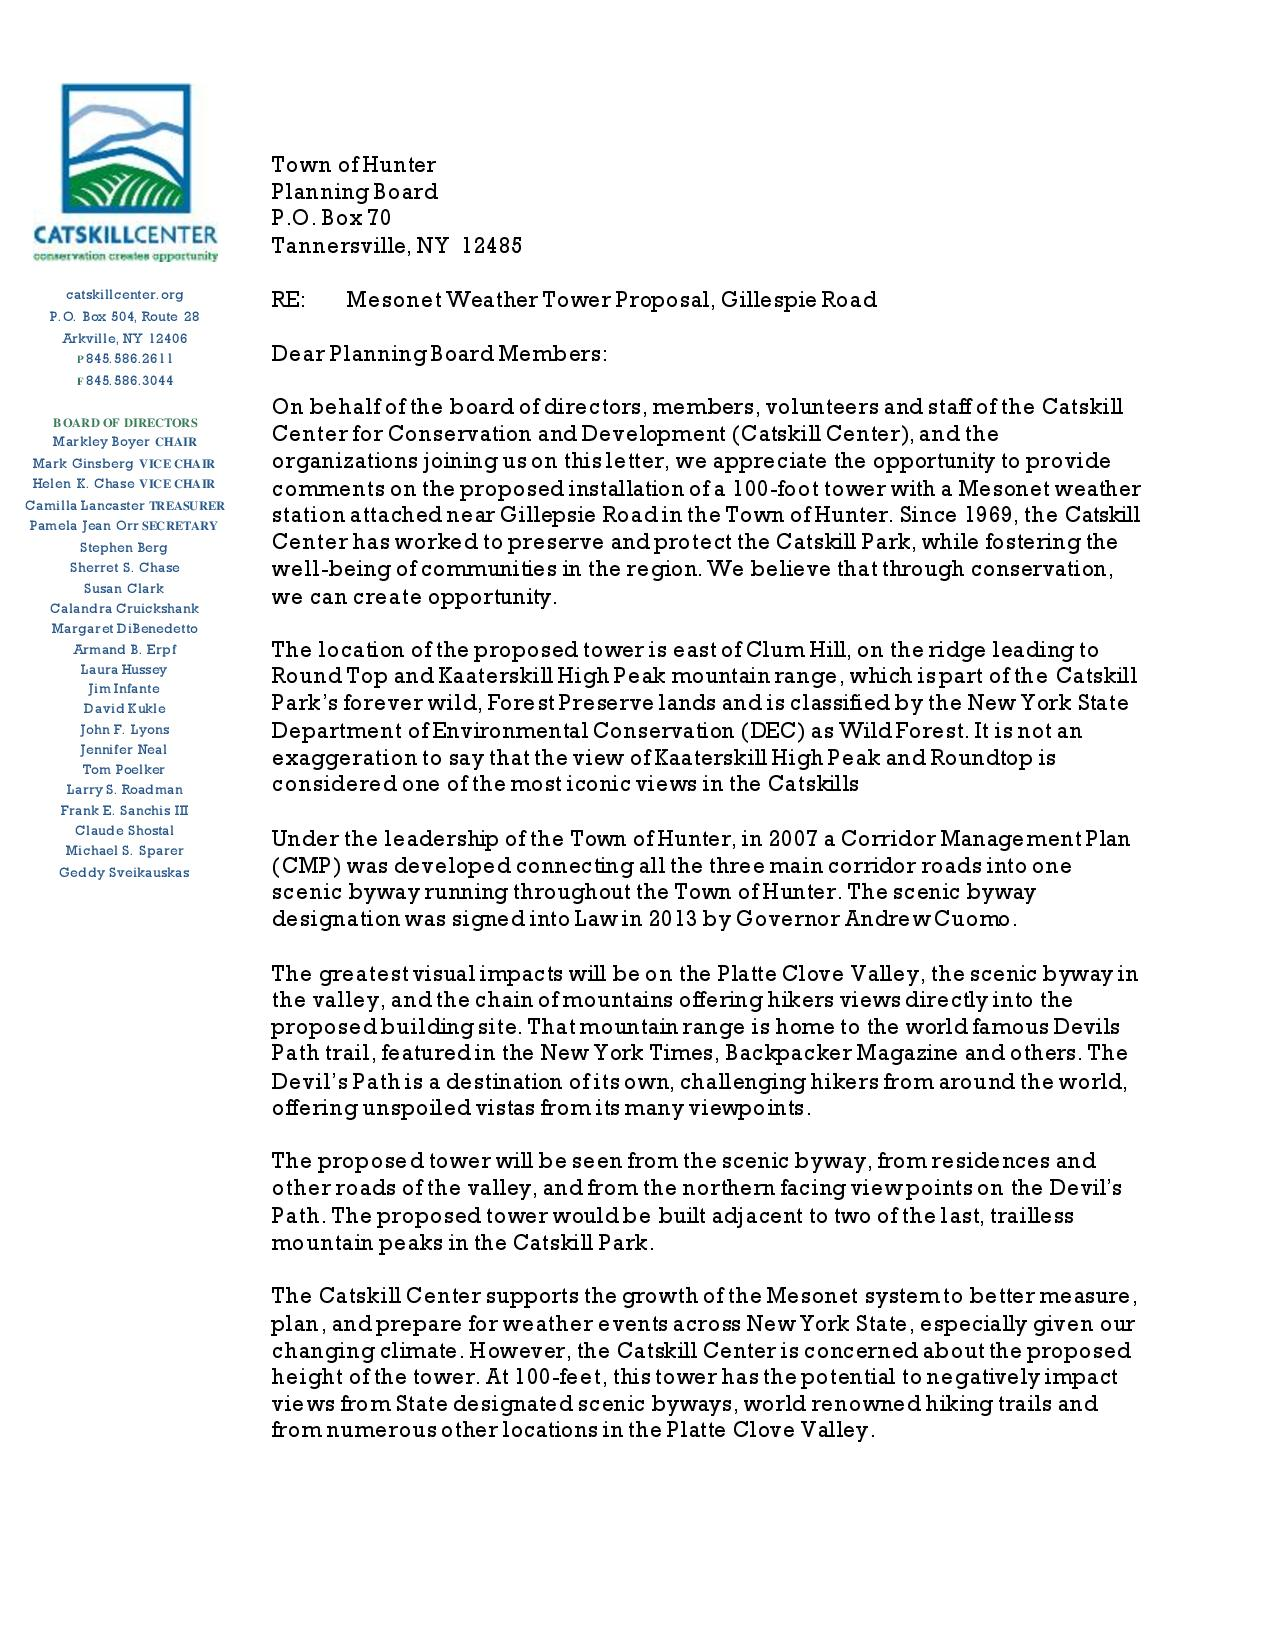 20161004 Catskill Center and Partners - TownOfHunterPlanningBoardMesonetCommentLetter-page-001.jpg